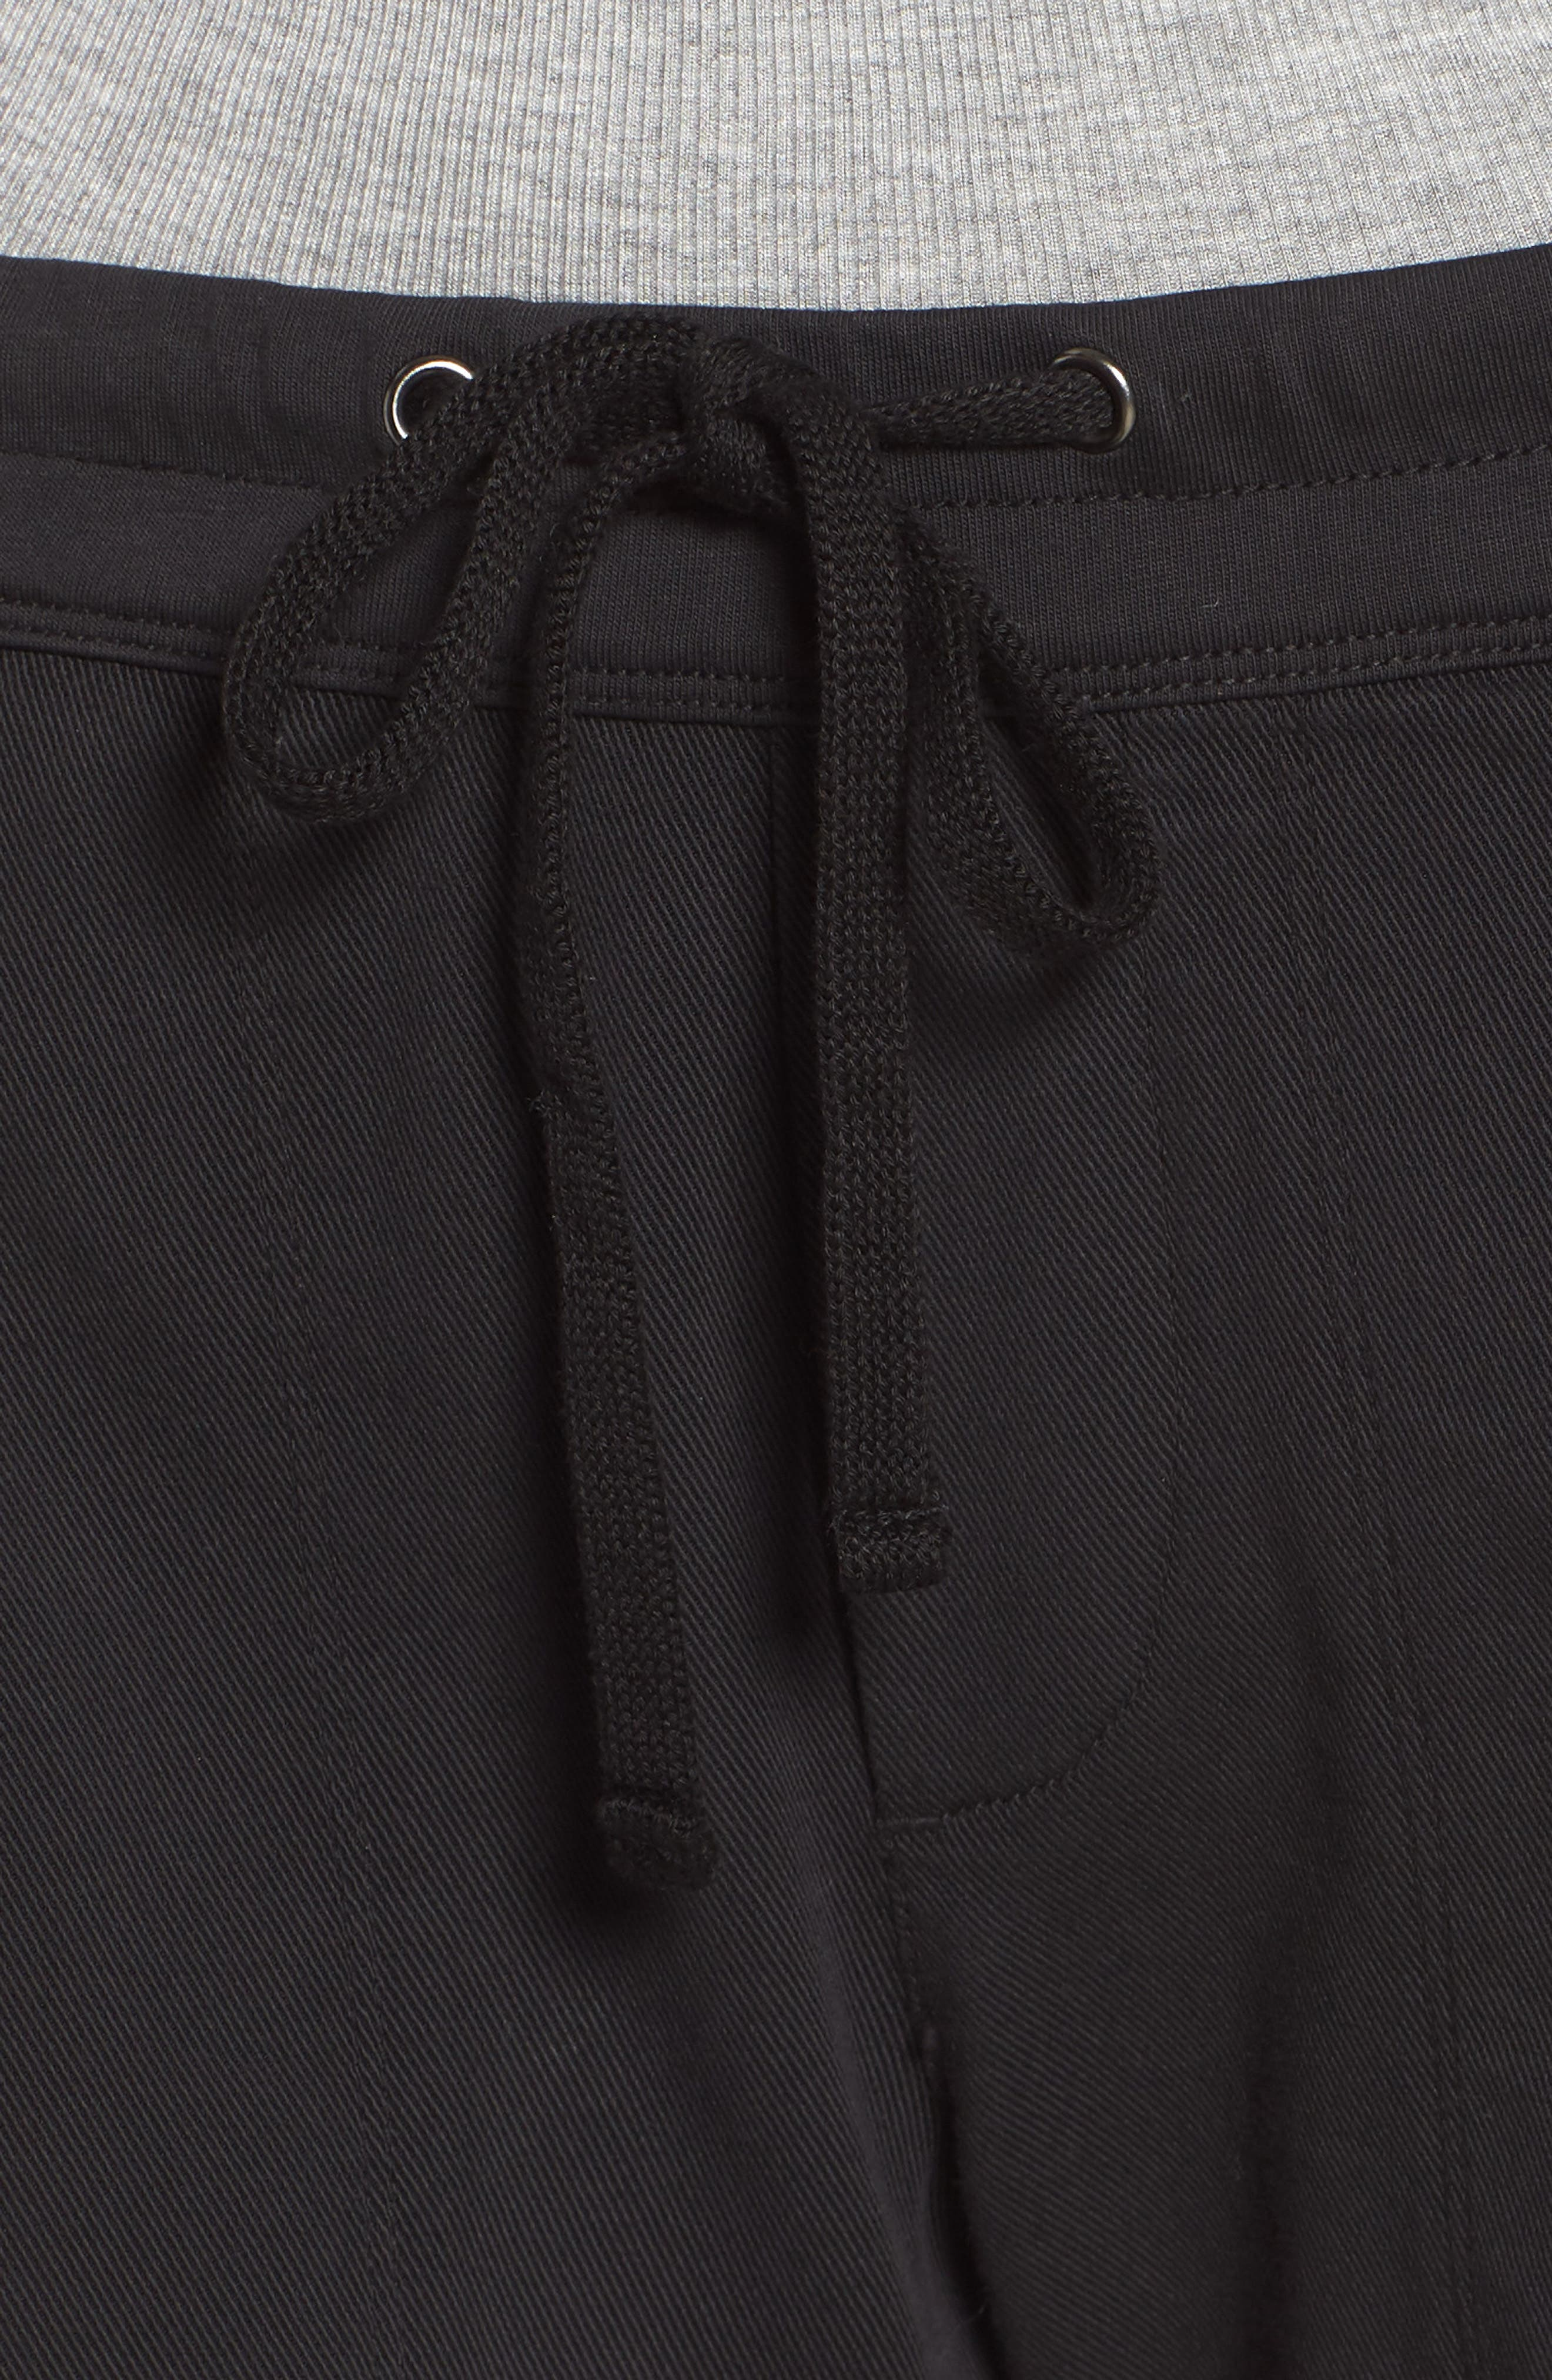 Soft Drape Utility Shorts,                             Alternate thumbnail 4, color,                             001